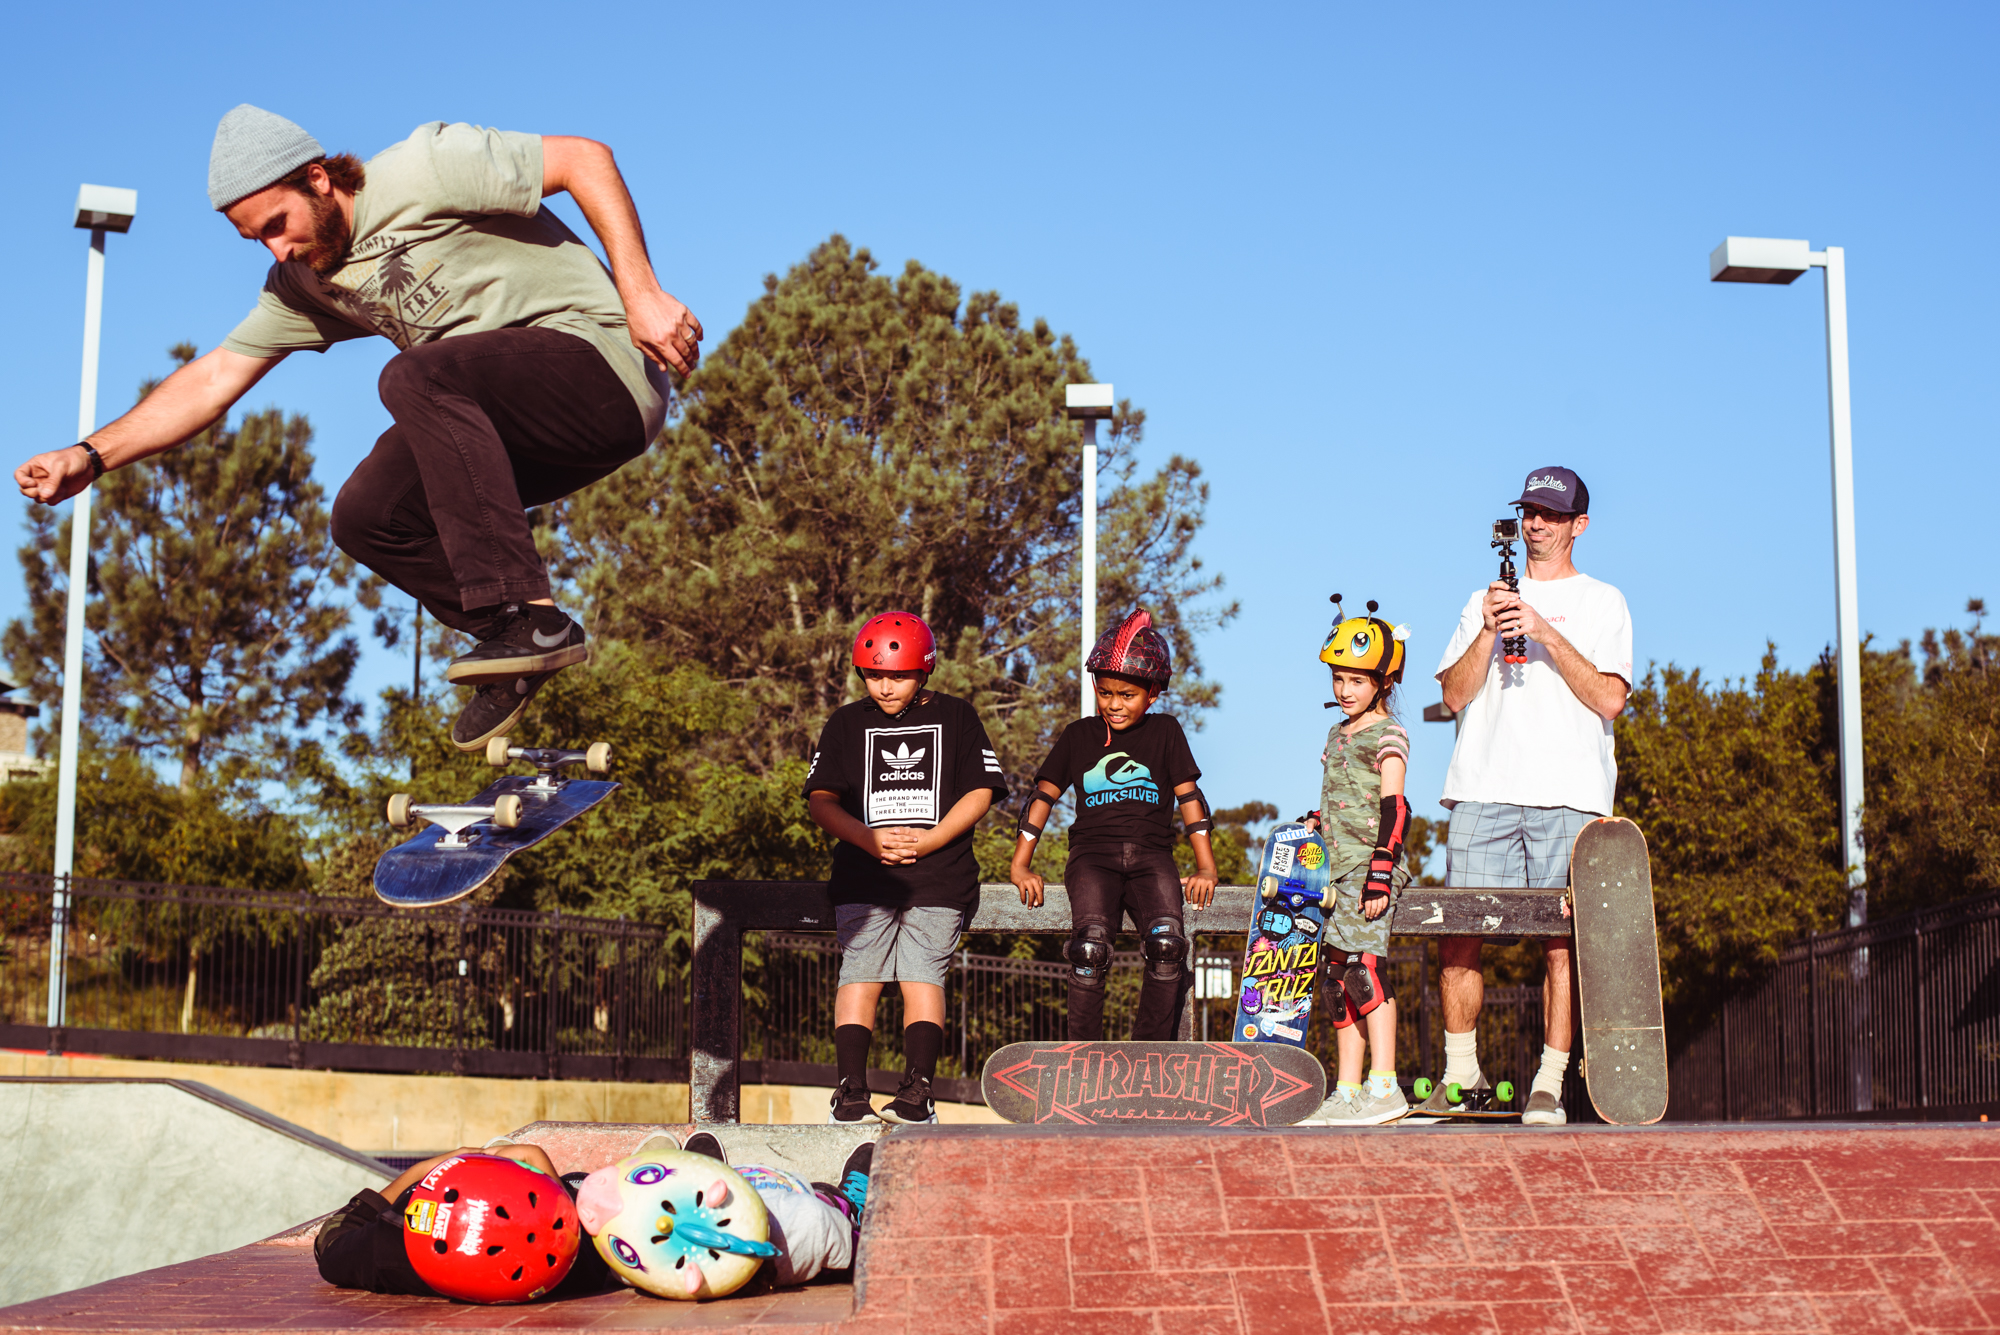 Skateboard Birthday Party-34.jpg